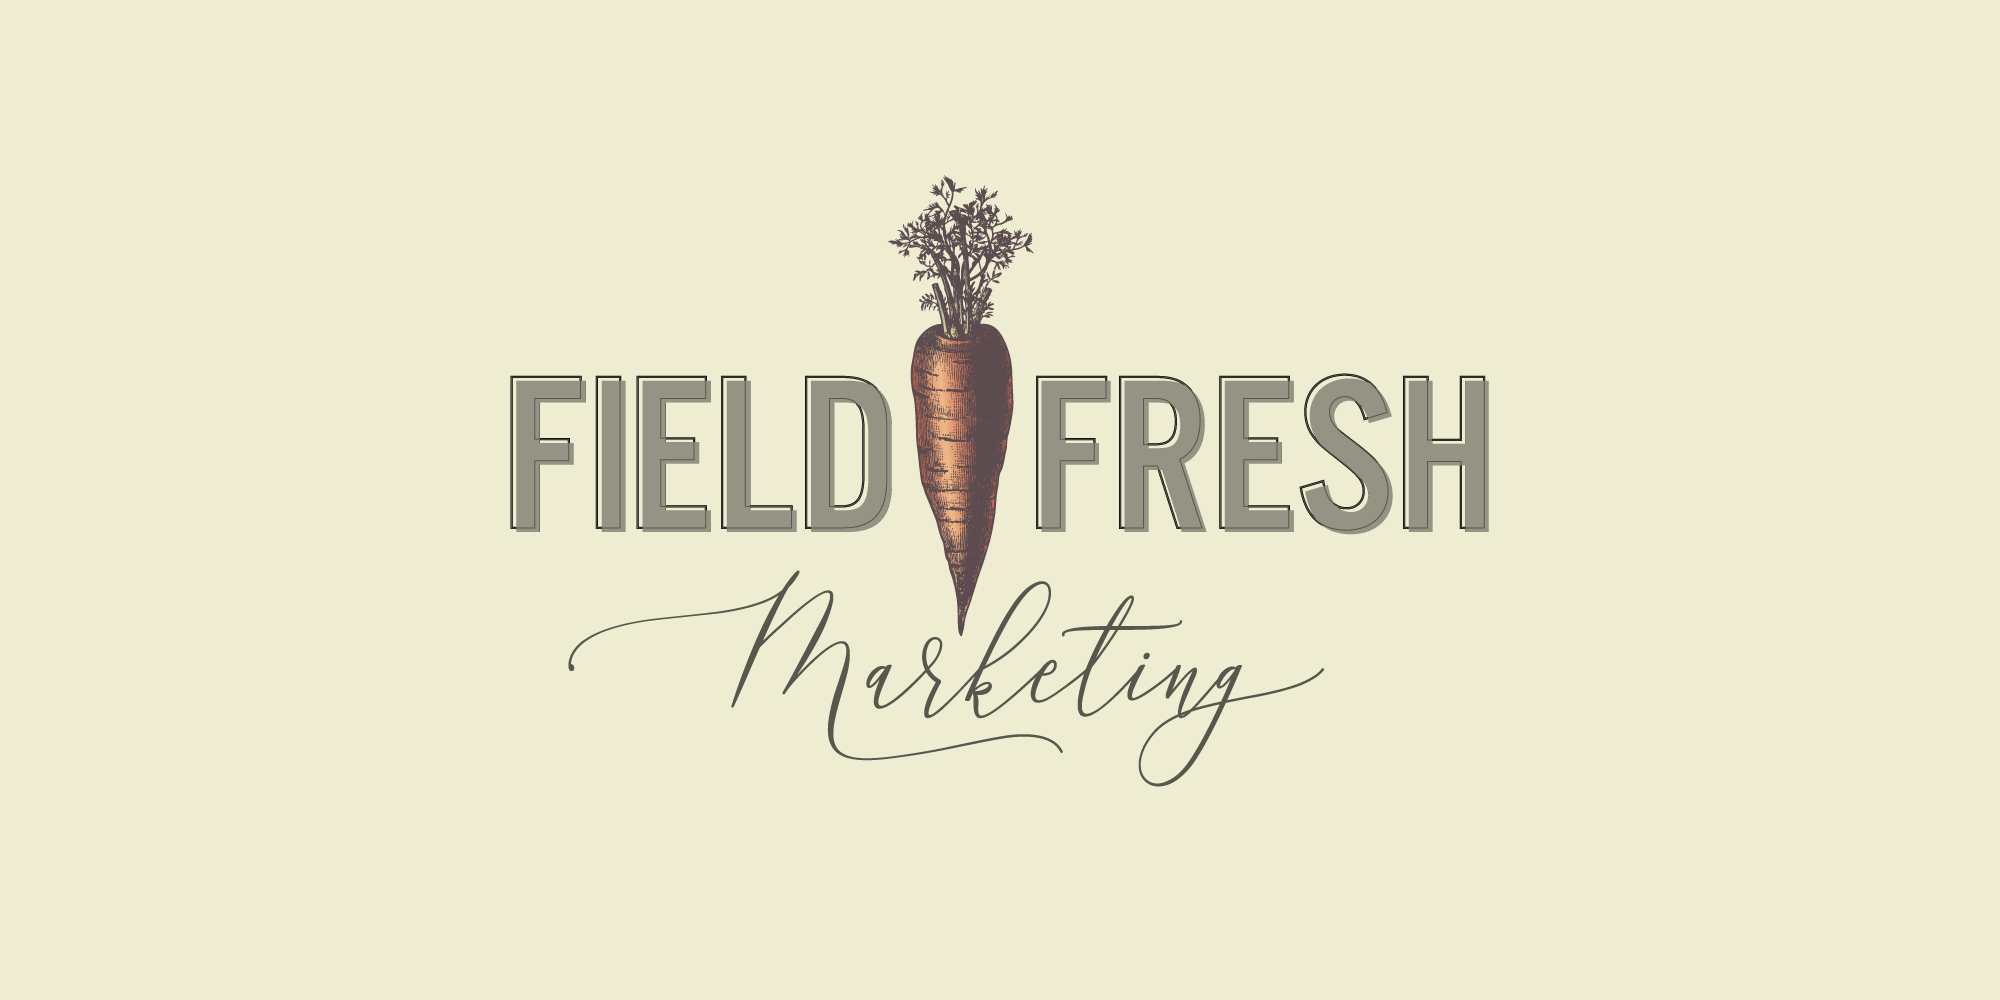 FIELD FRESH MARKETING